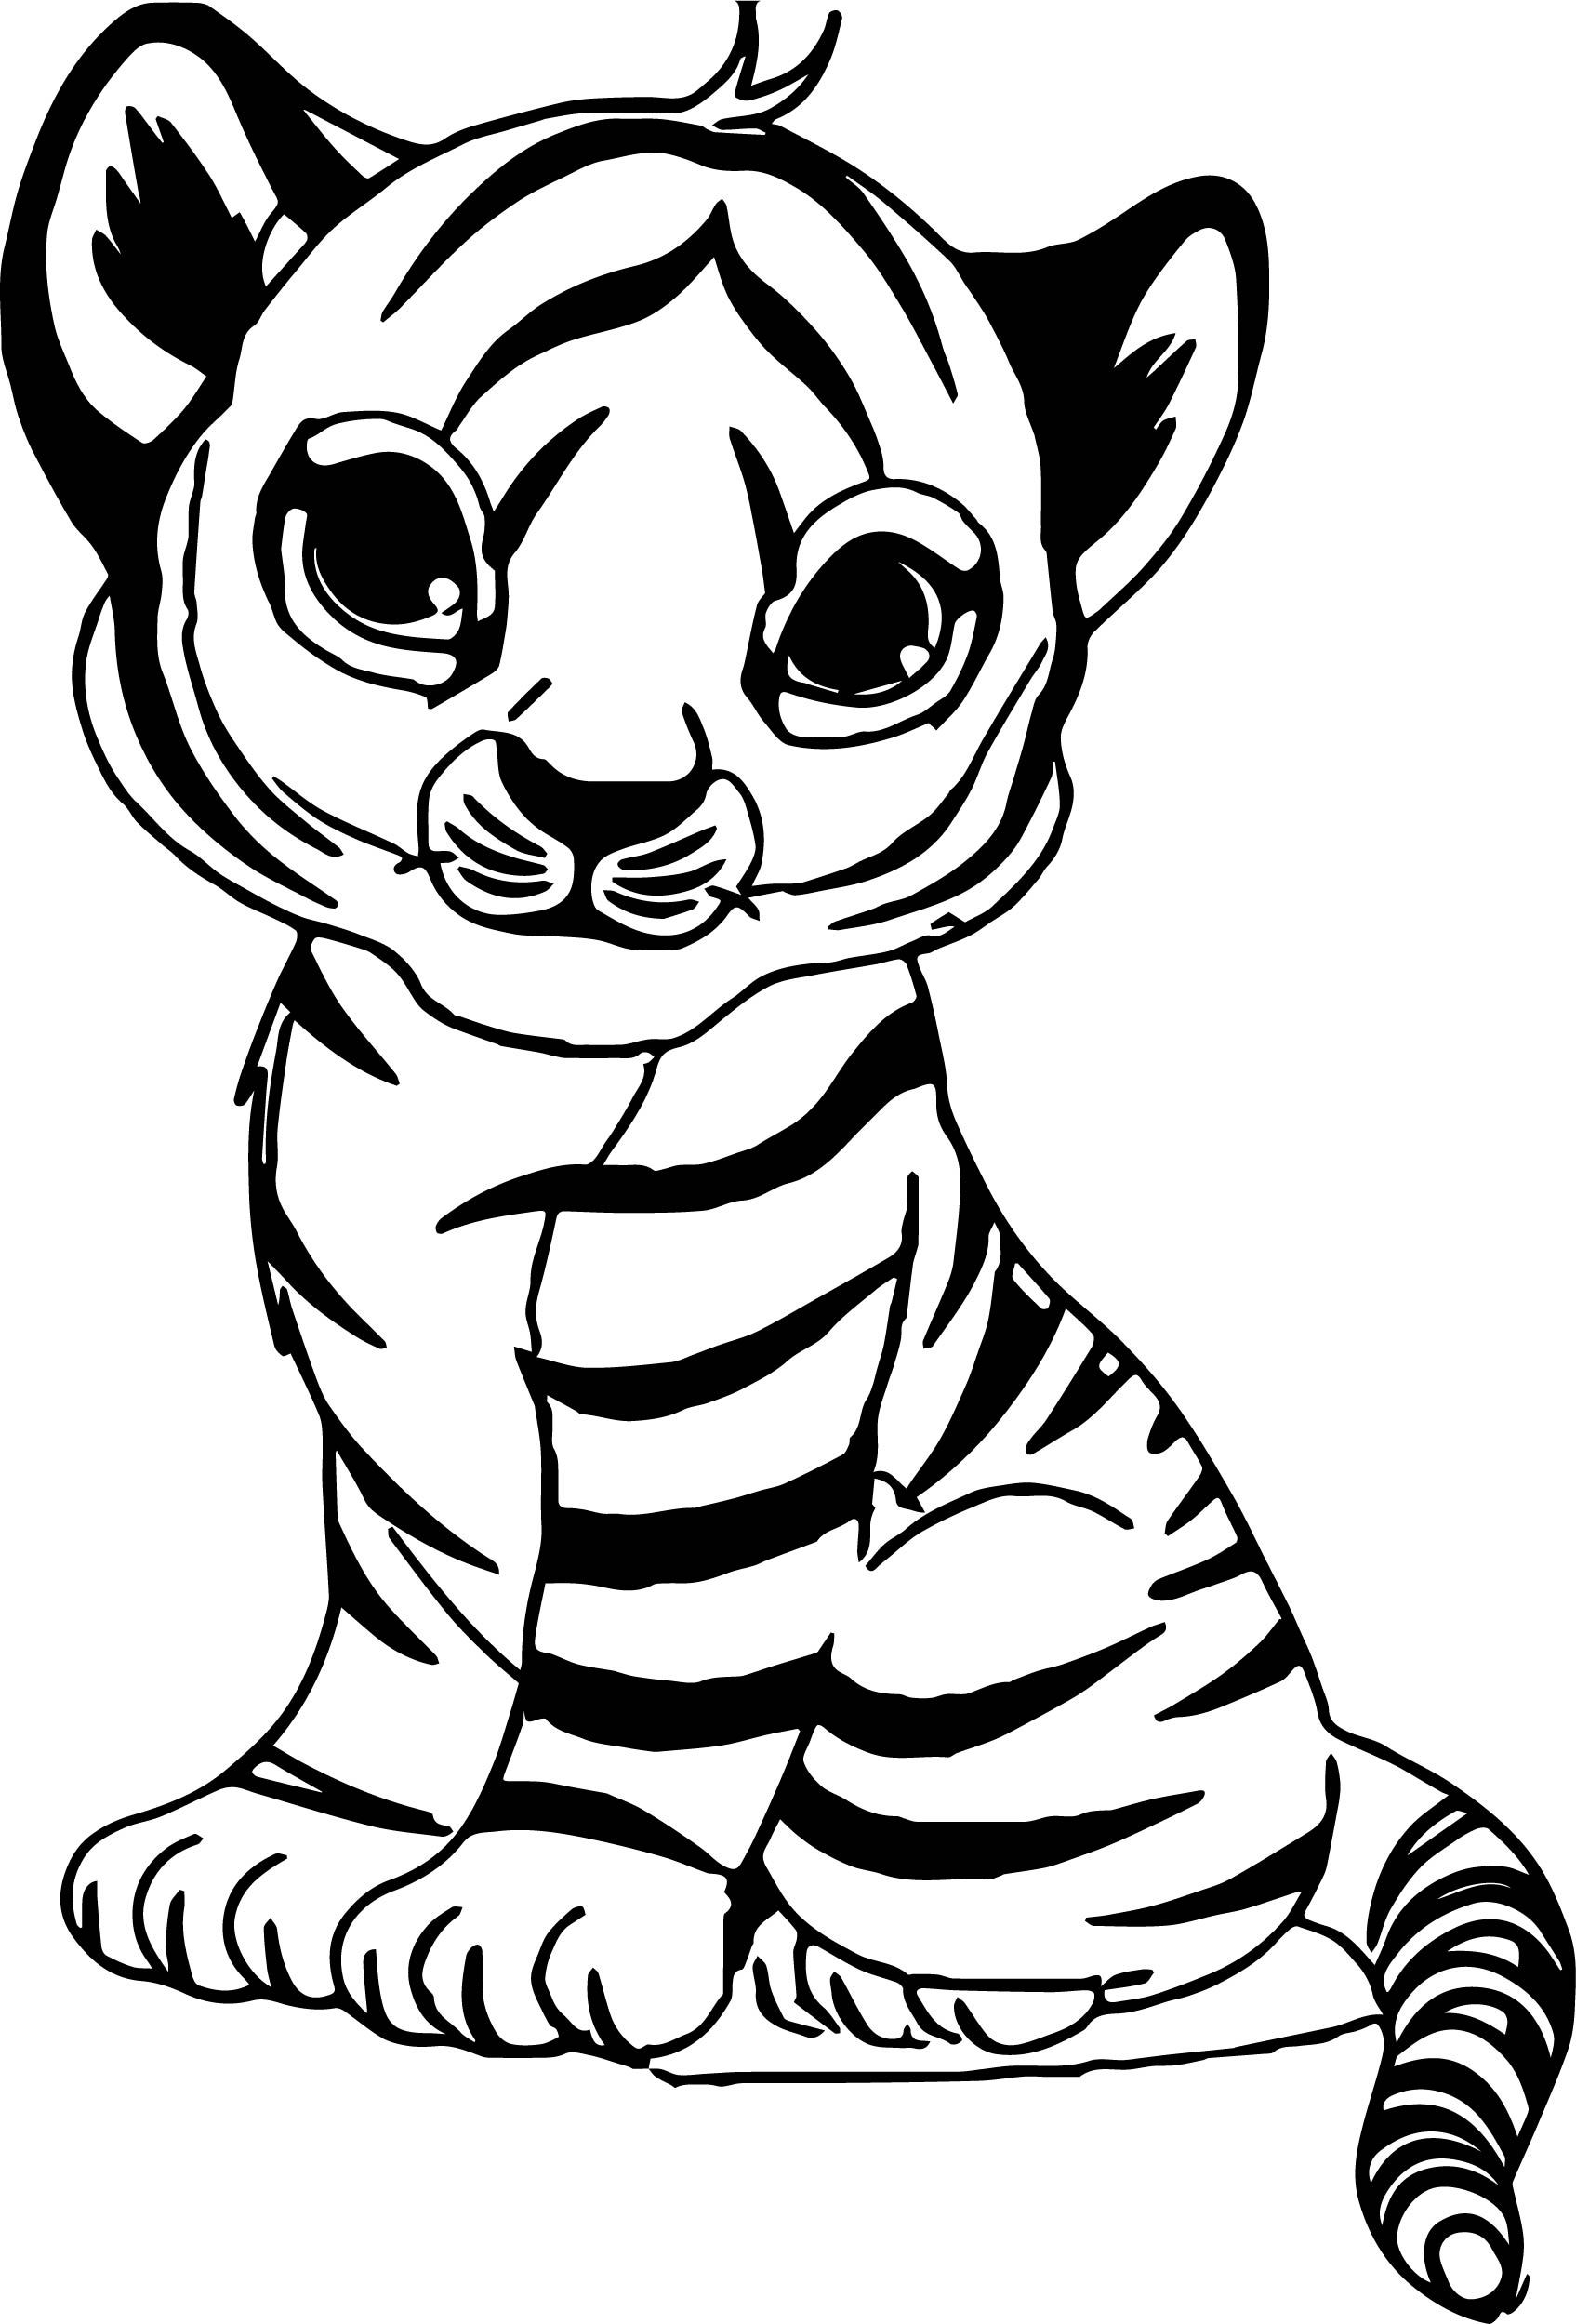 Nice Cute Baby Tiger Coloring Page Cartoon Tiger Unicorn Coloring Pages Cute Coloring Pages